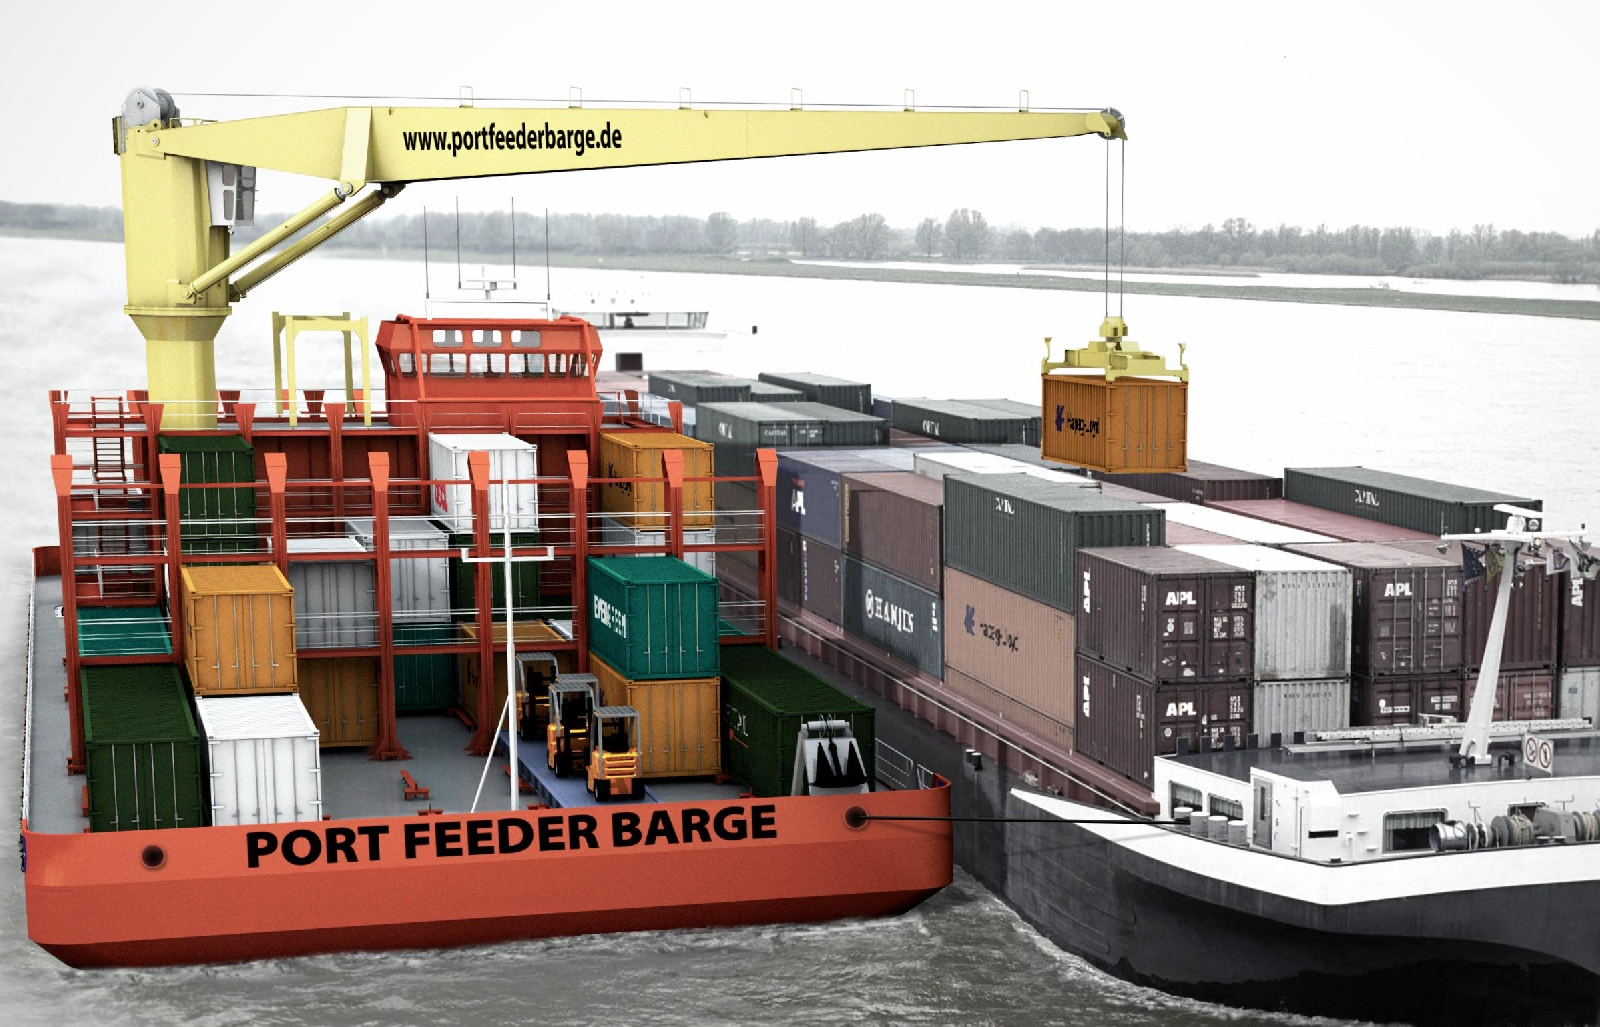 Use crane barges seaward of docked ships to ease congestion: expert